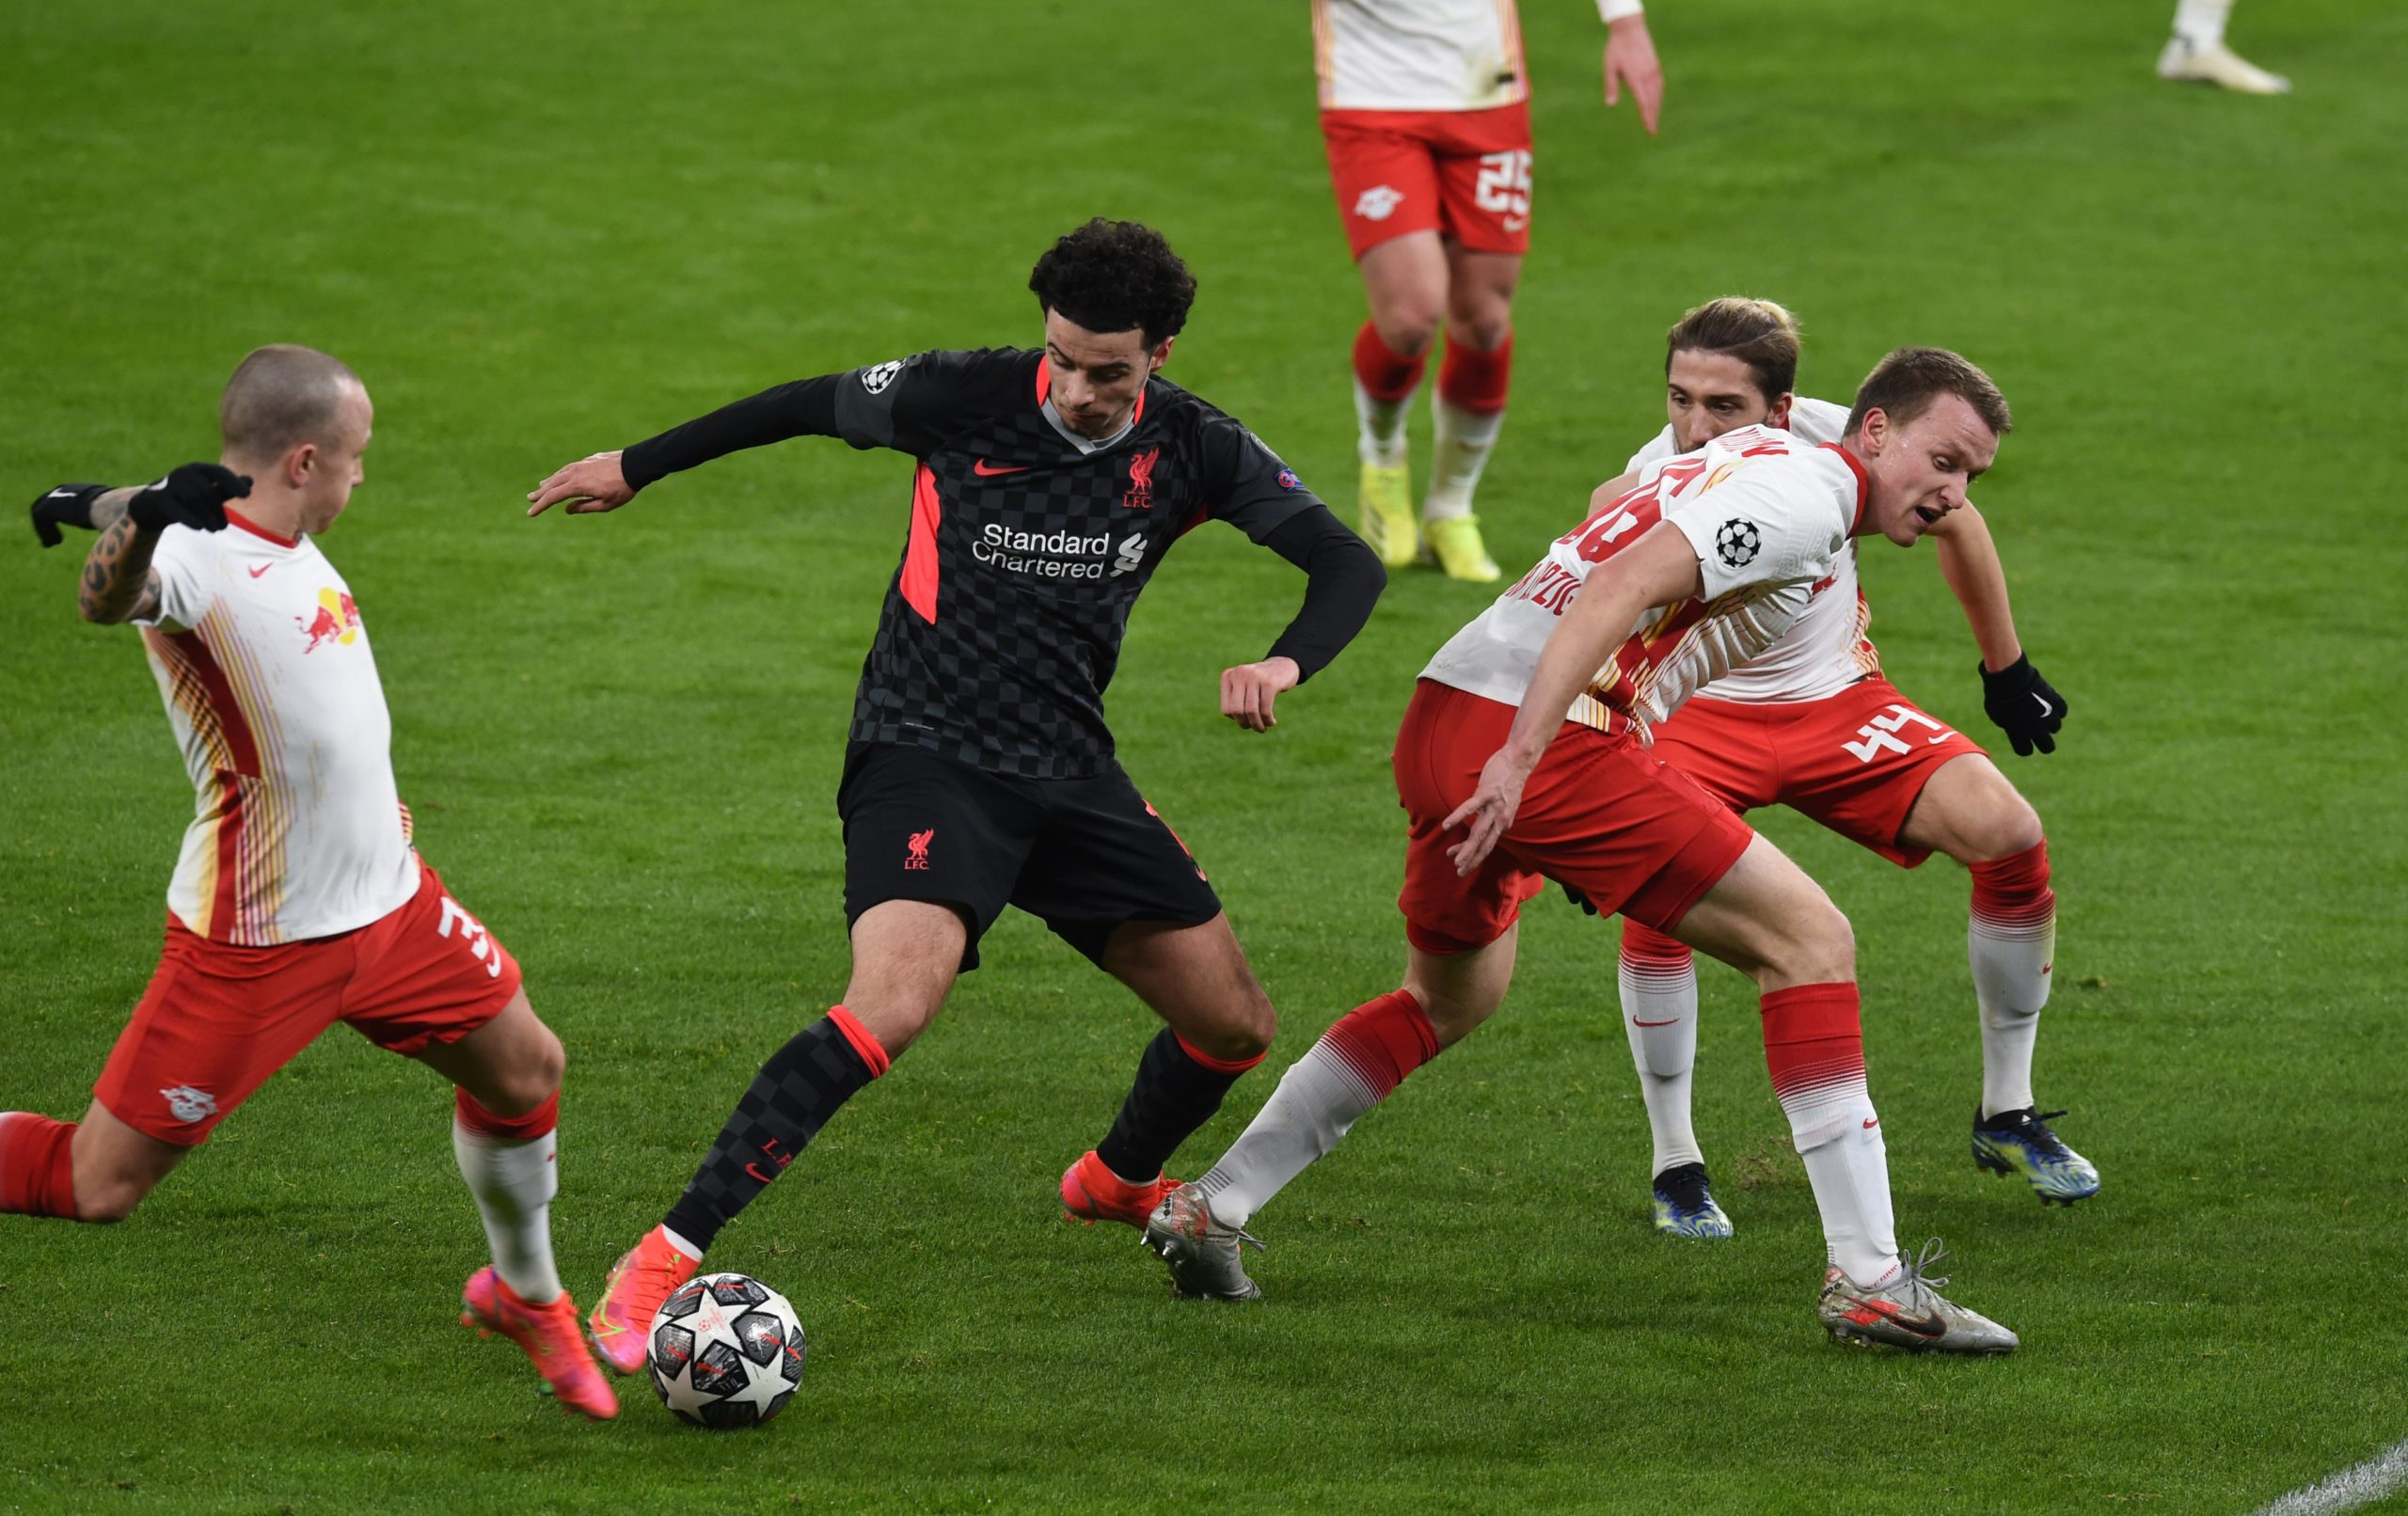 Ligue des Champions - 1/8 aller | Les notes de Leipzig - Liverpool (0-2) 1